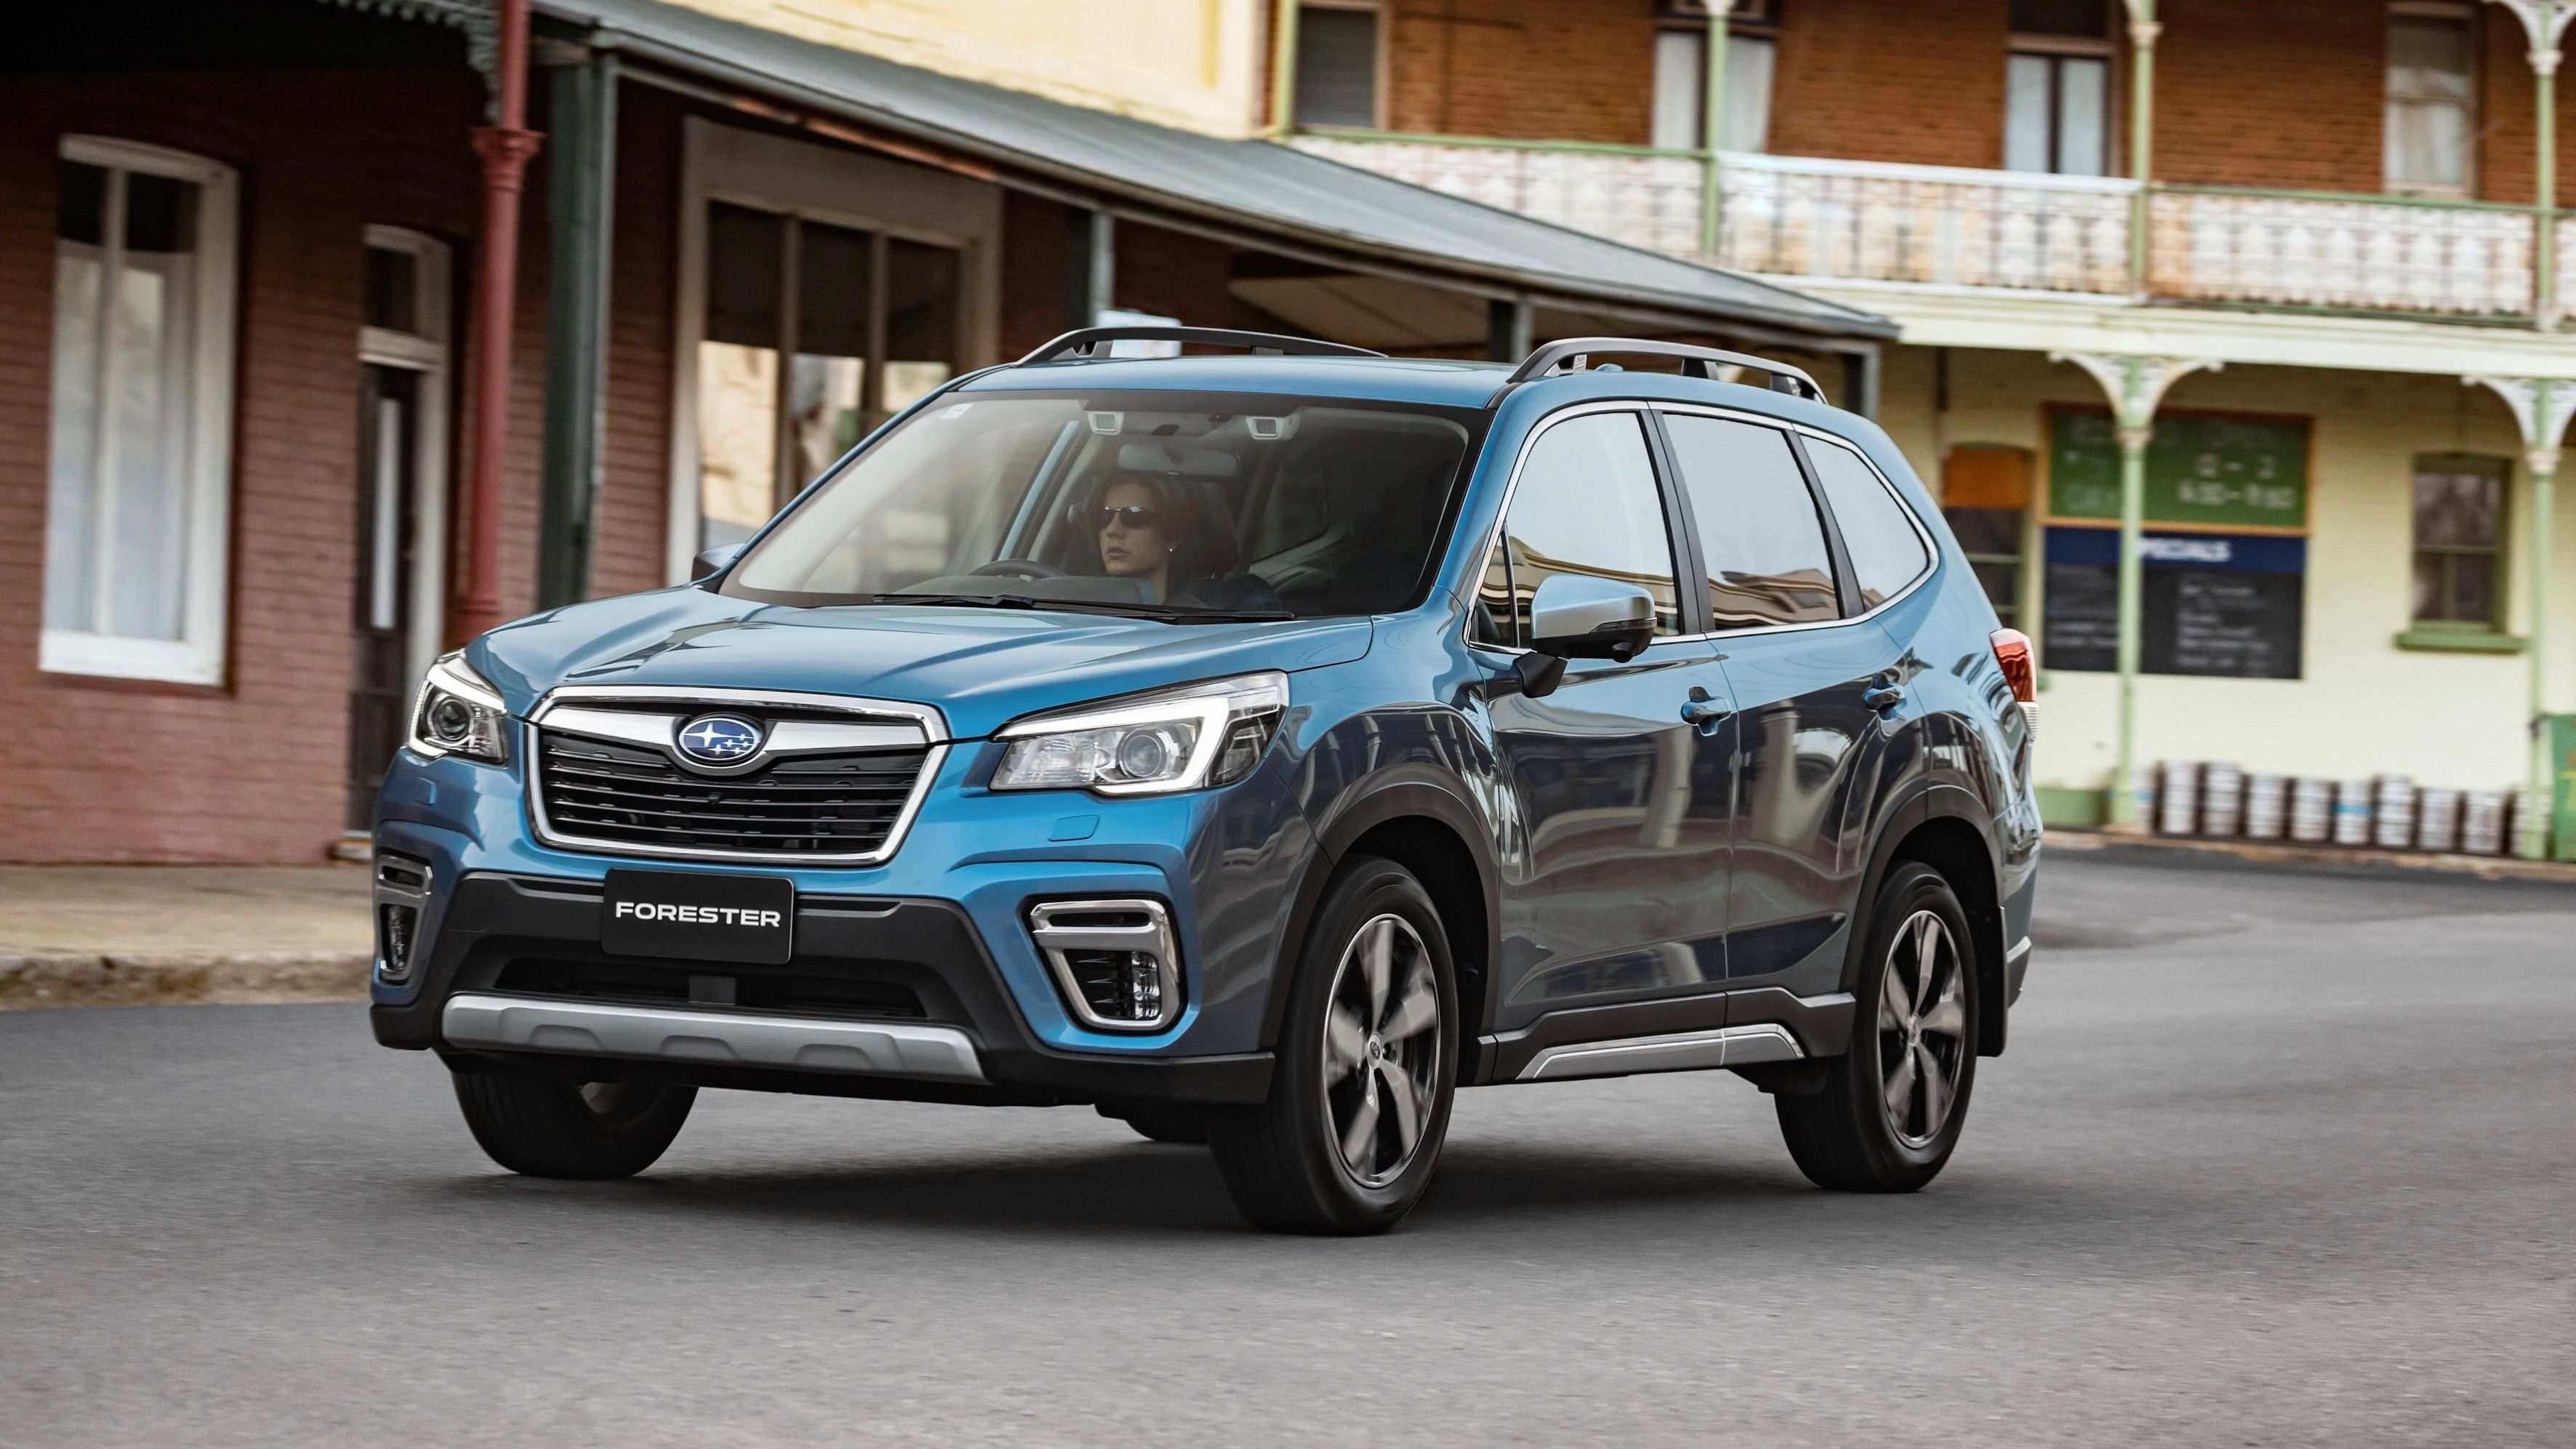 54 All New Subaru Forester 2020 Australia Images for Subaru Forester 2020 Australia